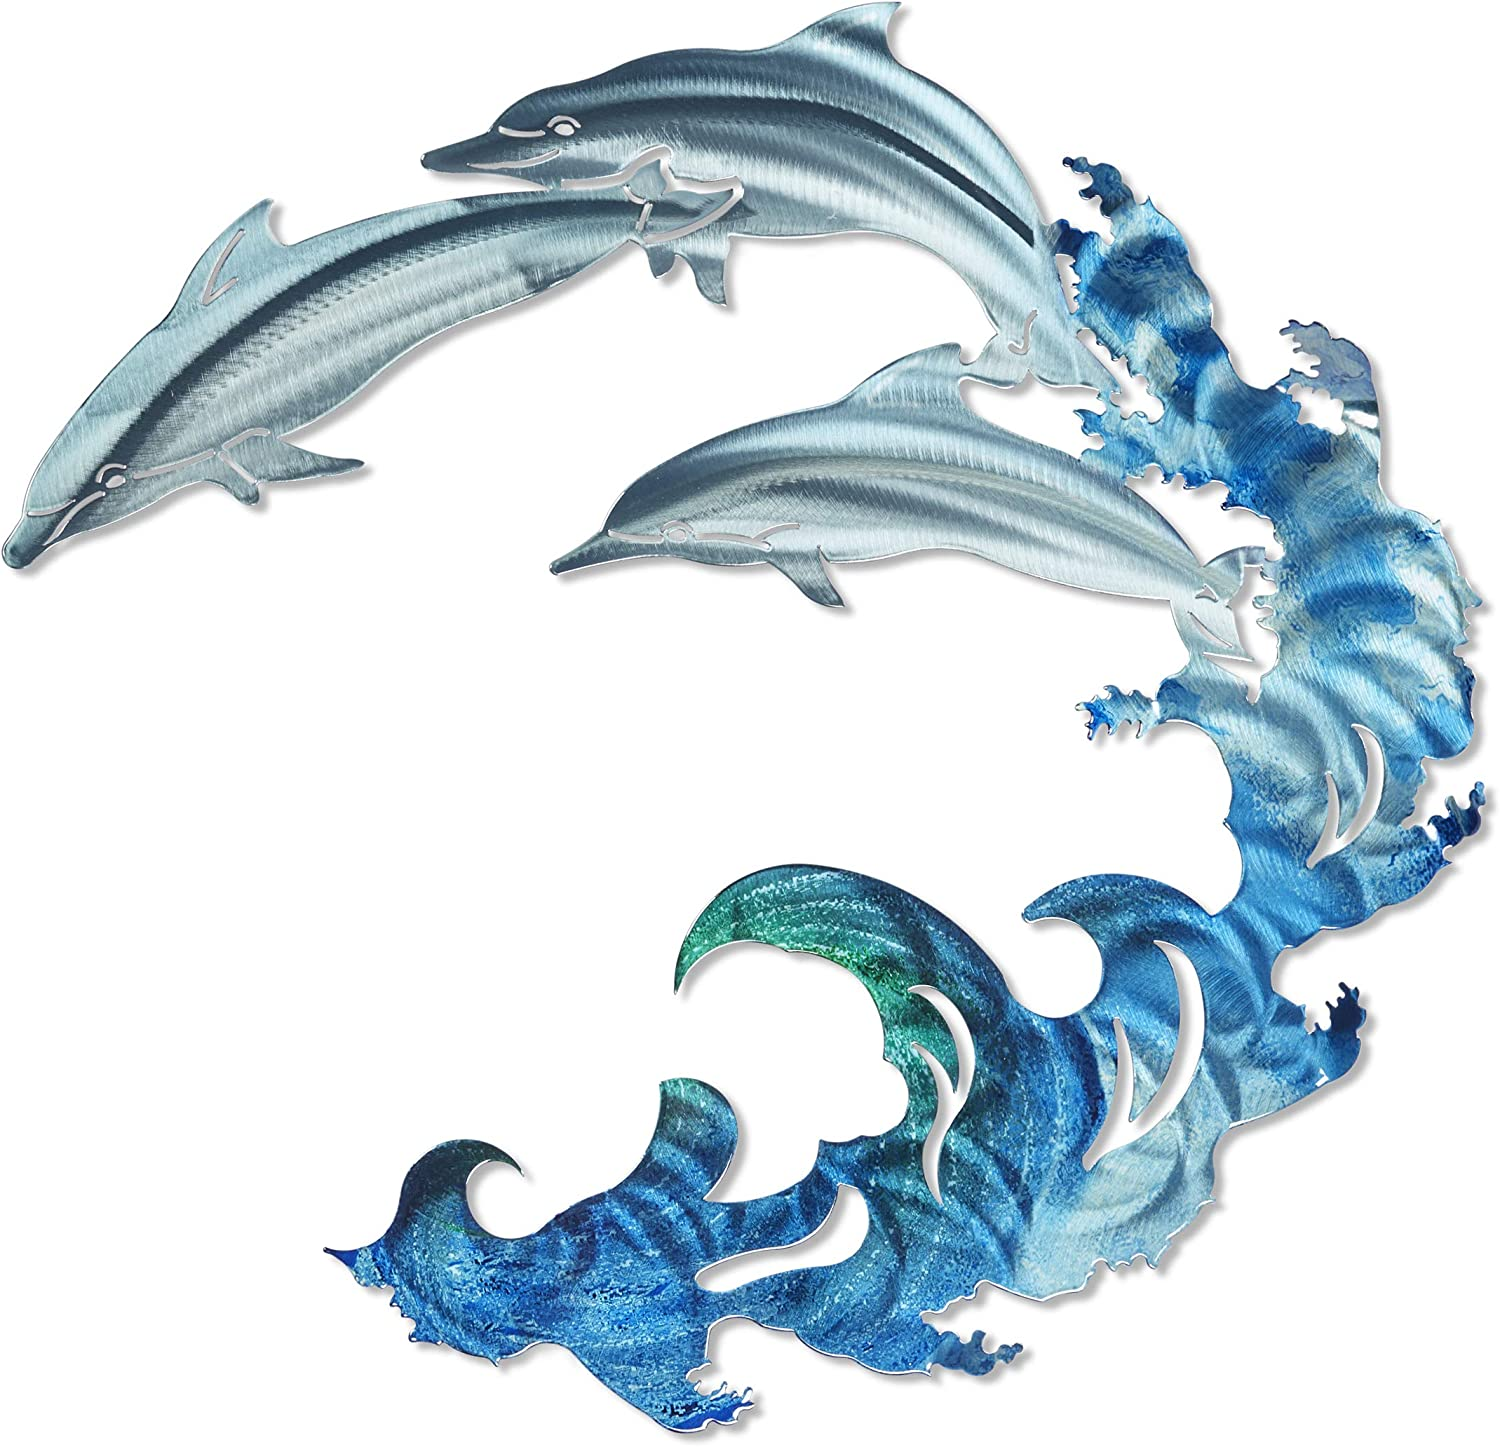 3D Metal Wall Art - Dolphin Theme Beach Wall Art - Handmade in The USA for Use Indoors or Outdoors